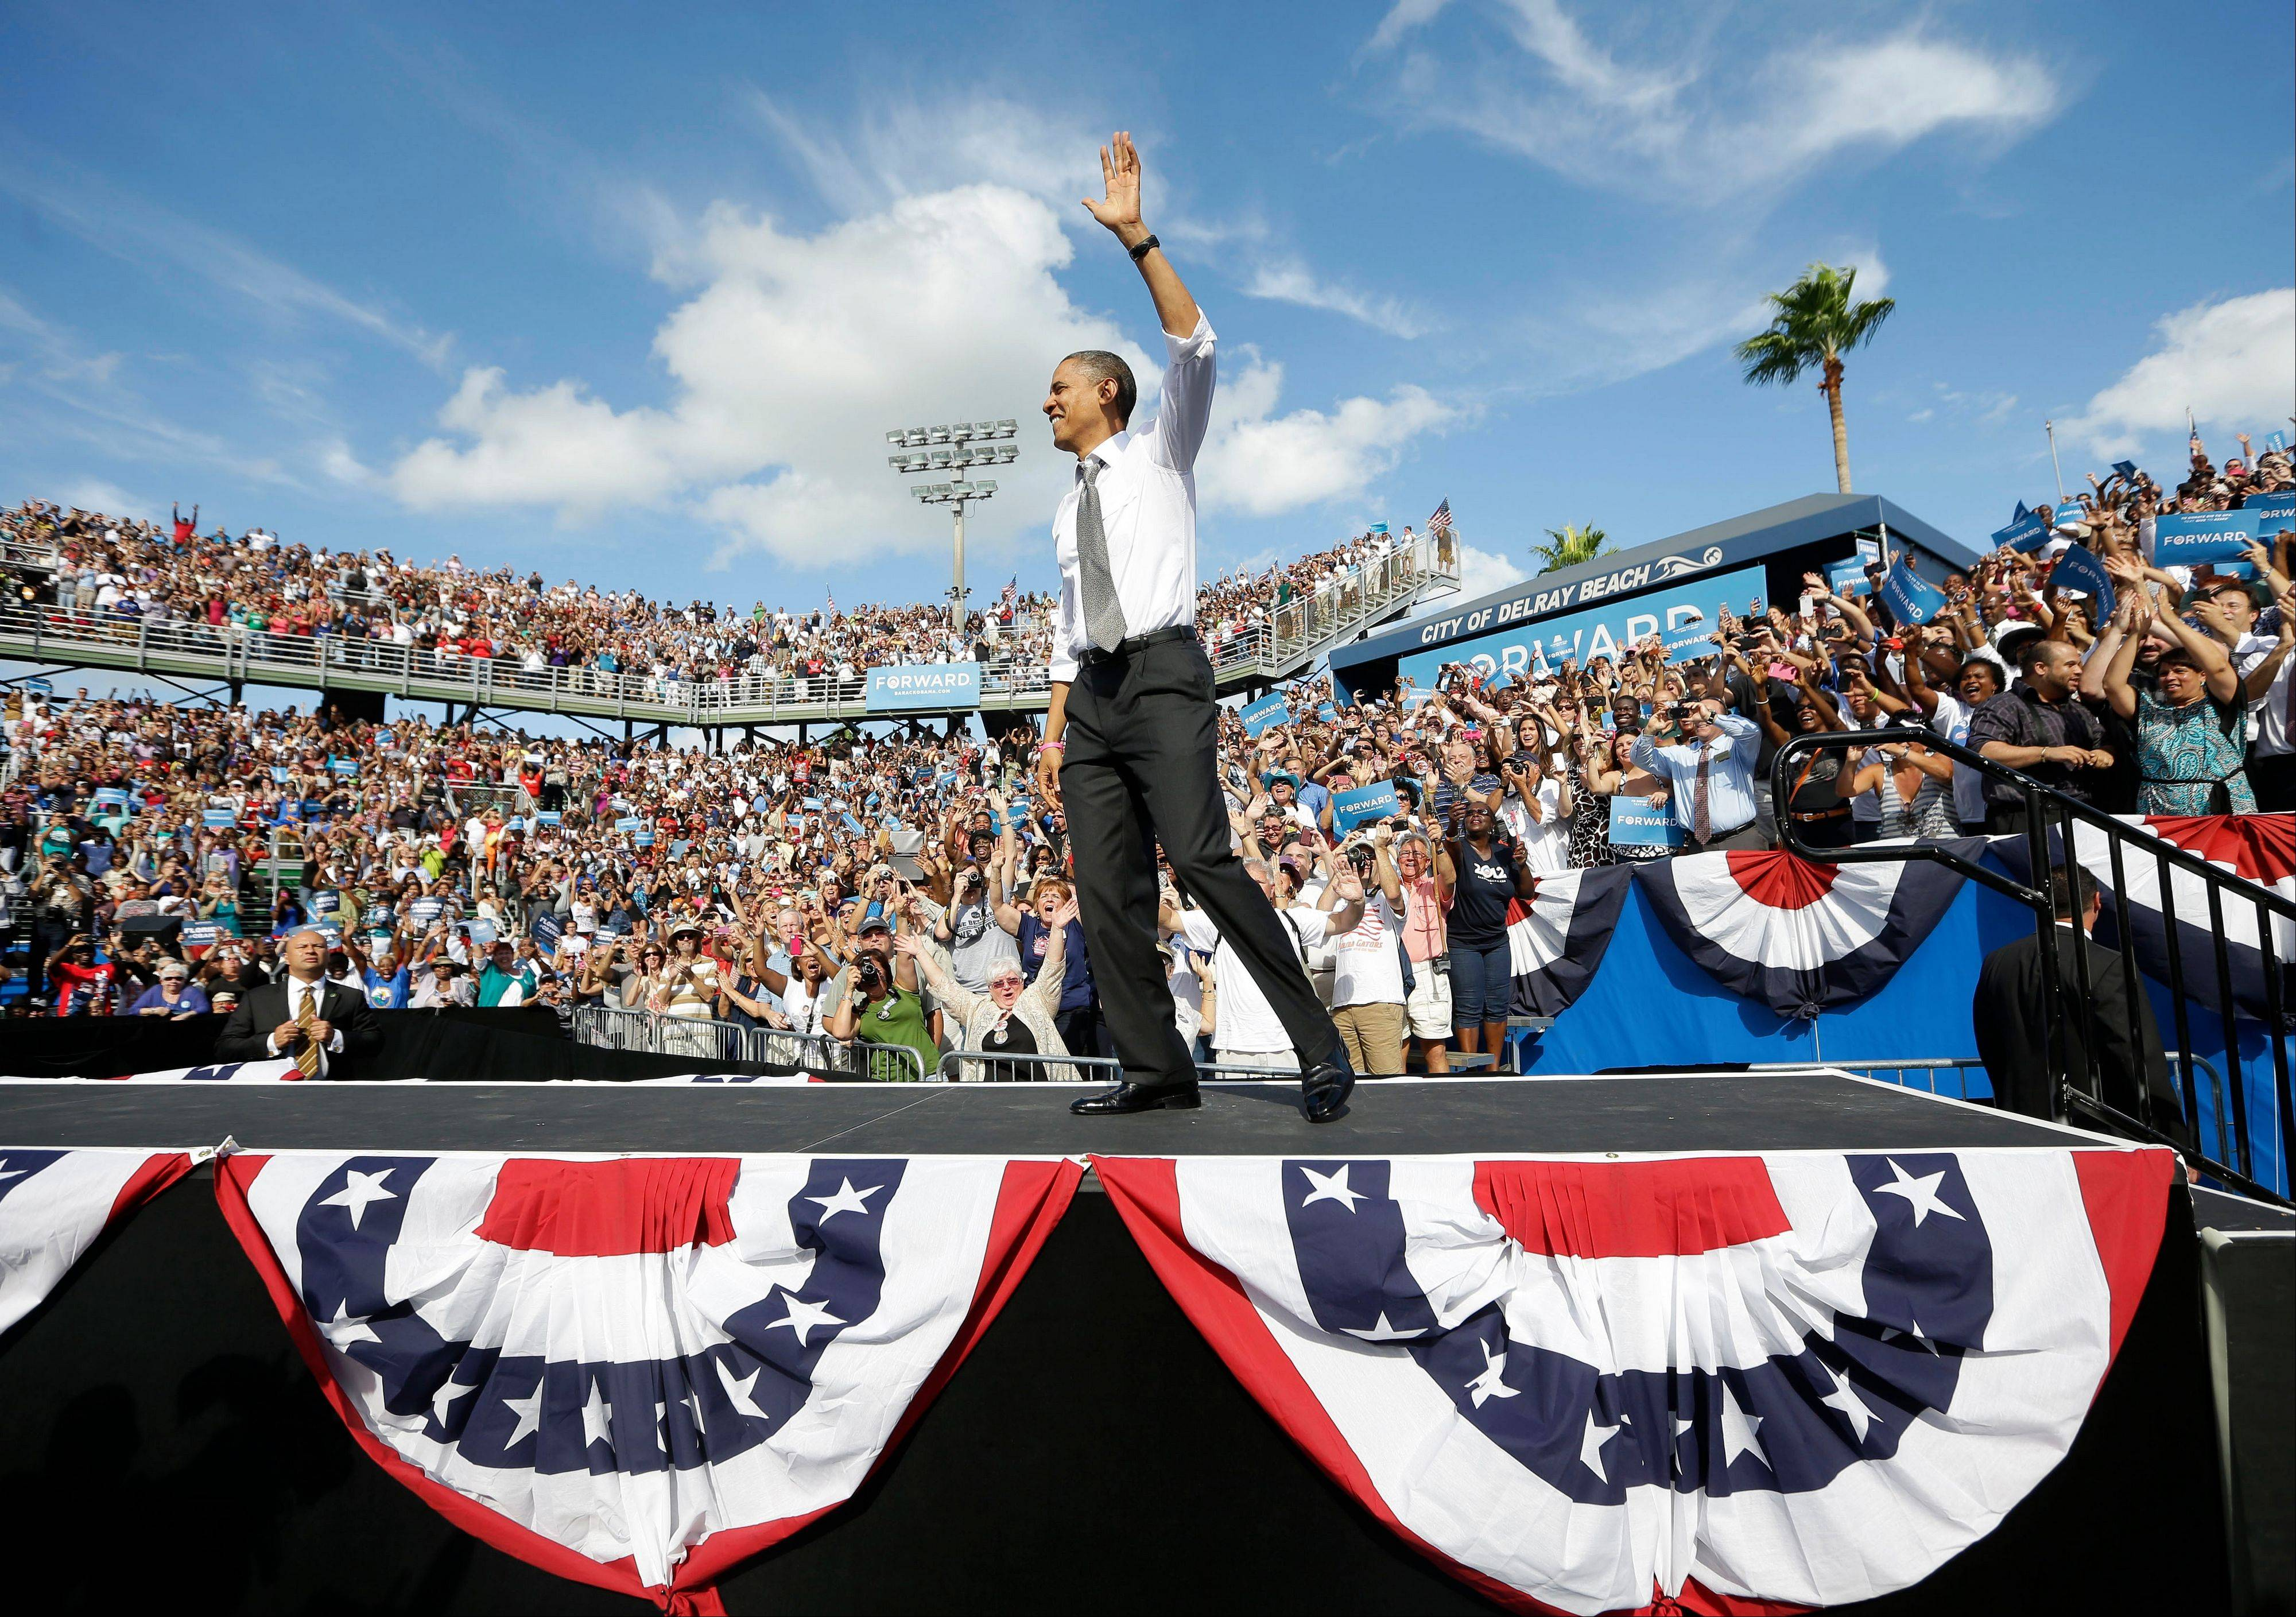 President Barack Obama waves as takes the stage at a campaign event at Delray Beach Tennis Center, Tuesday in Delray Beach, Fla.